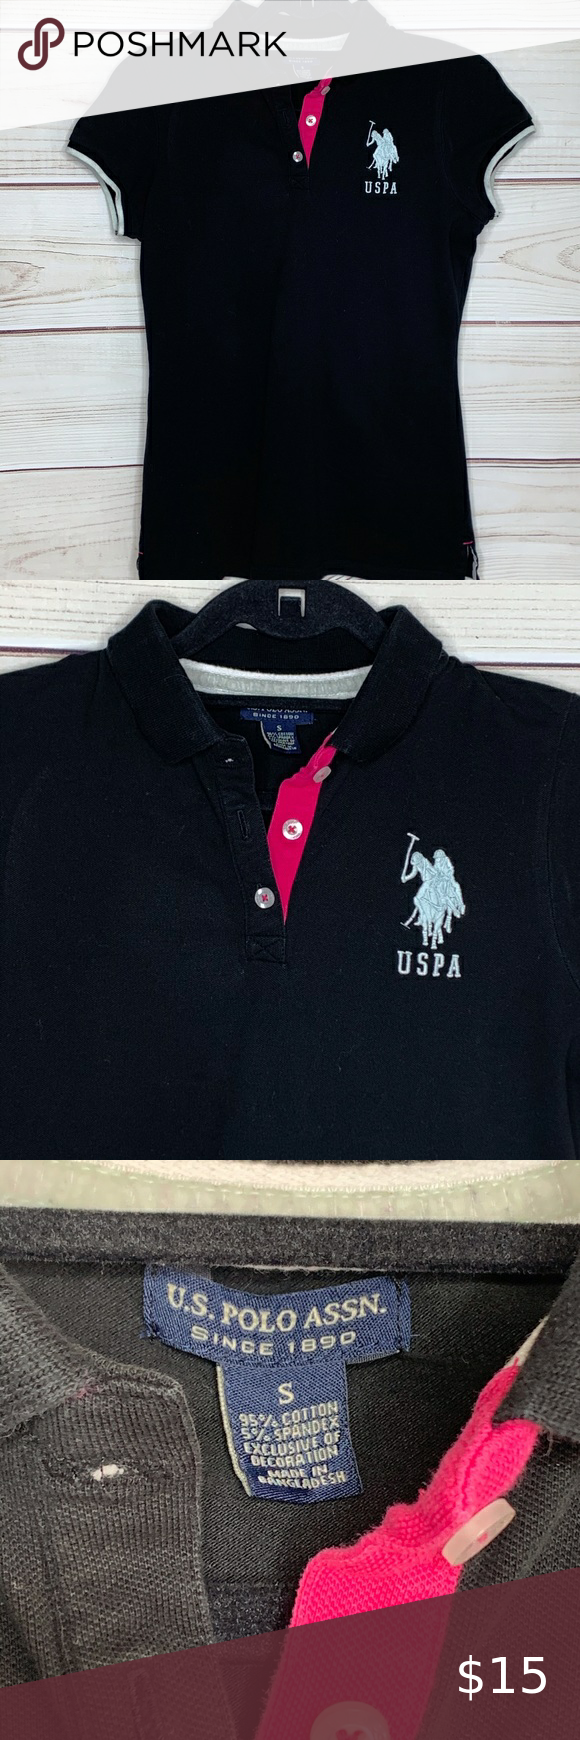 U S Polo Assn Black And Hot Pink Women S Polo Top U S Polo Assn Black And Hot Pink Women S Polo Top Size Small White Embroi Womens Polo Tops Hot Pink Women